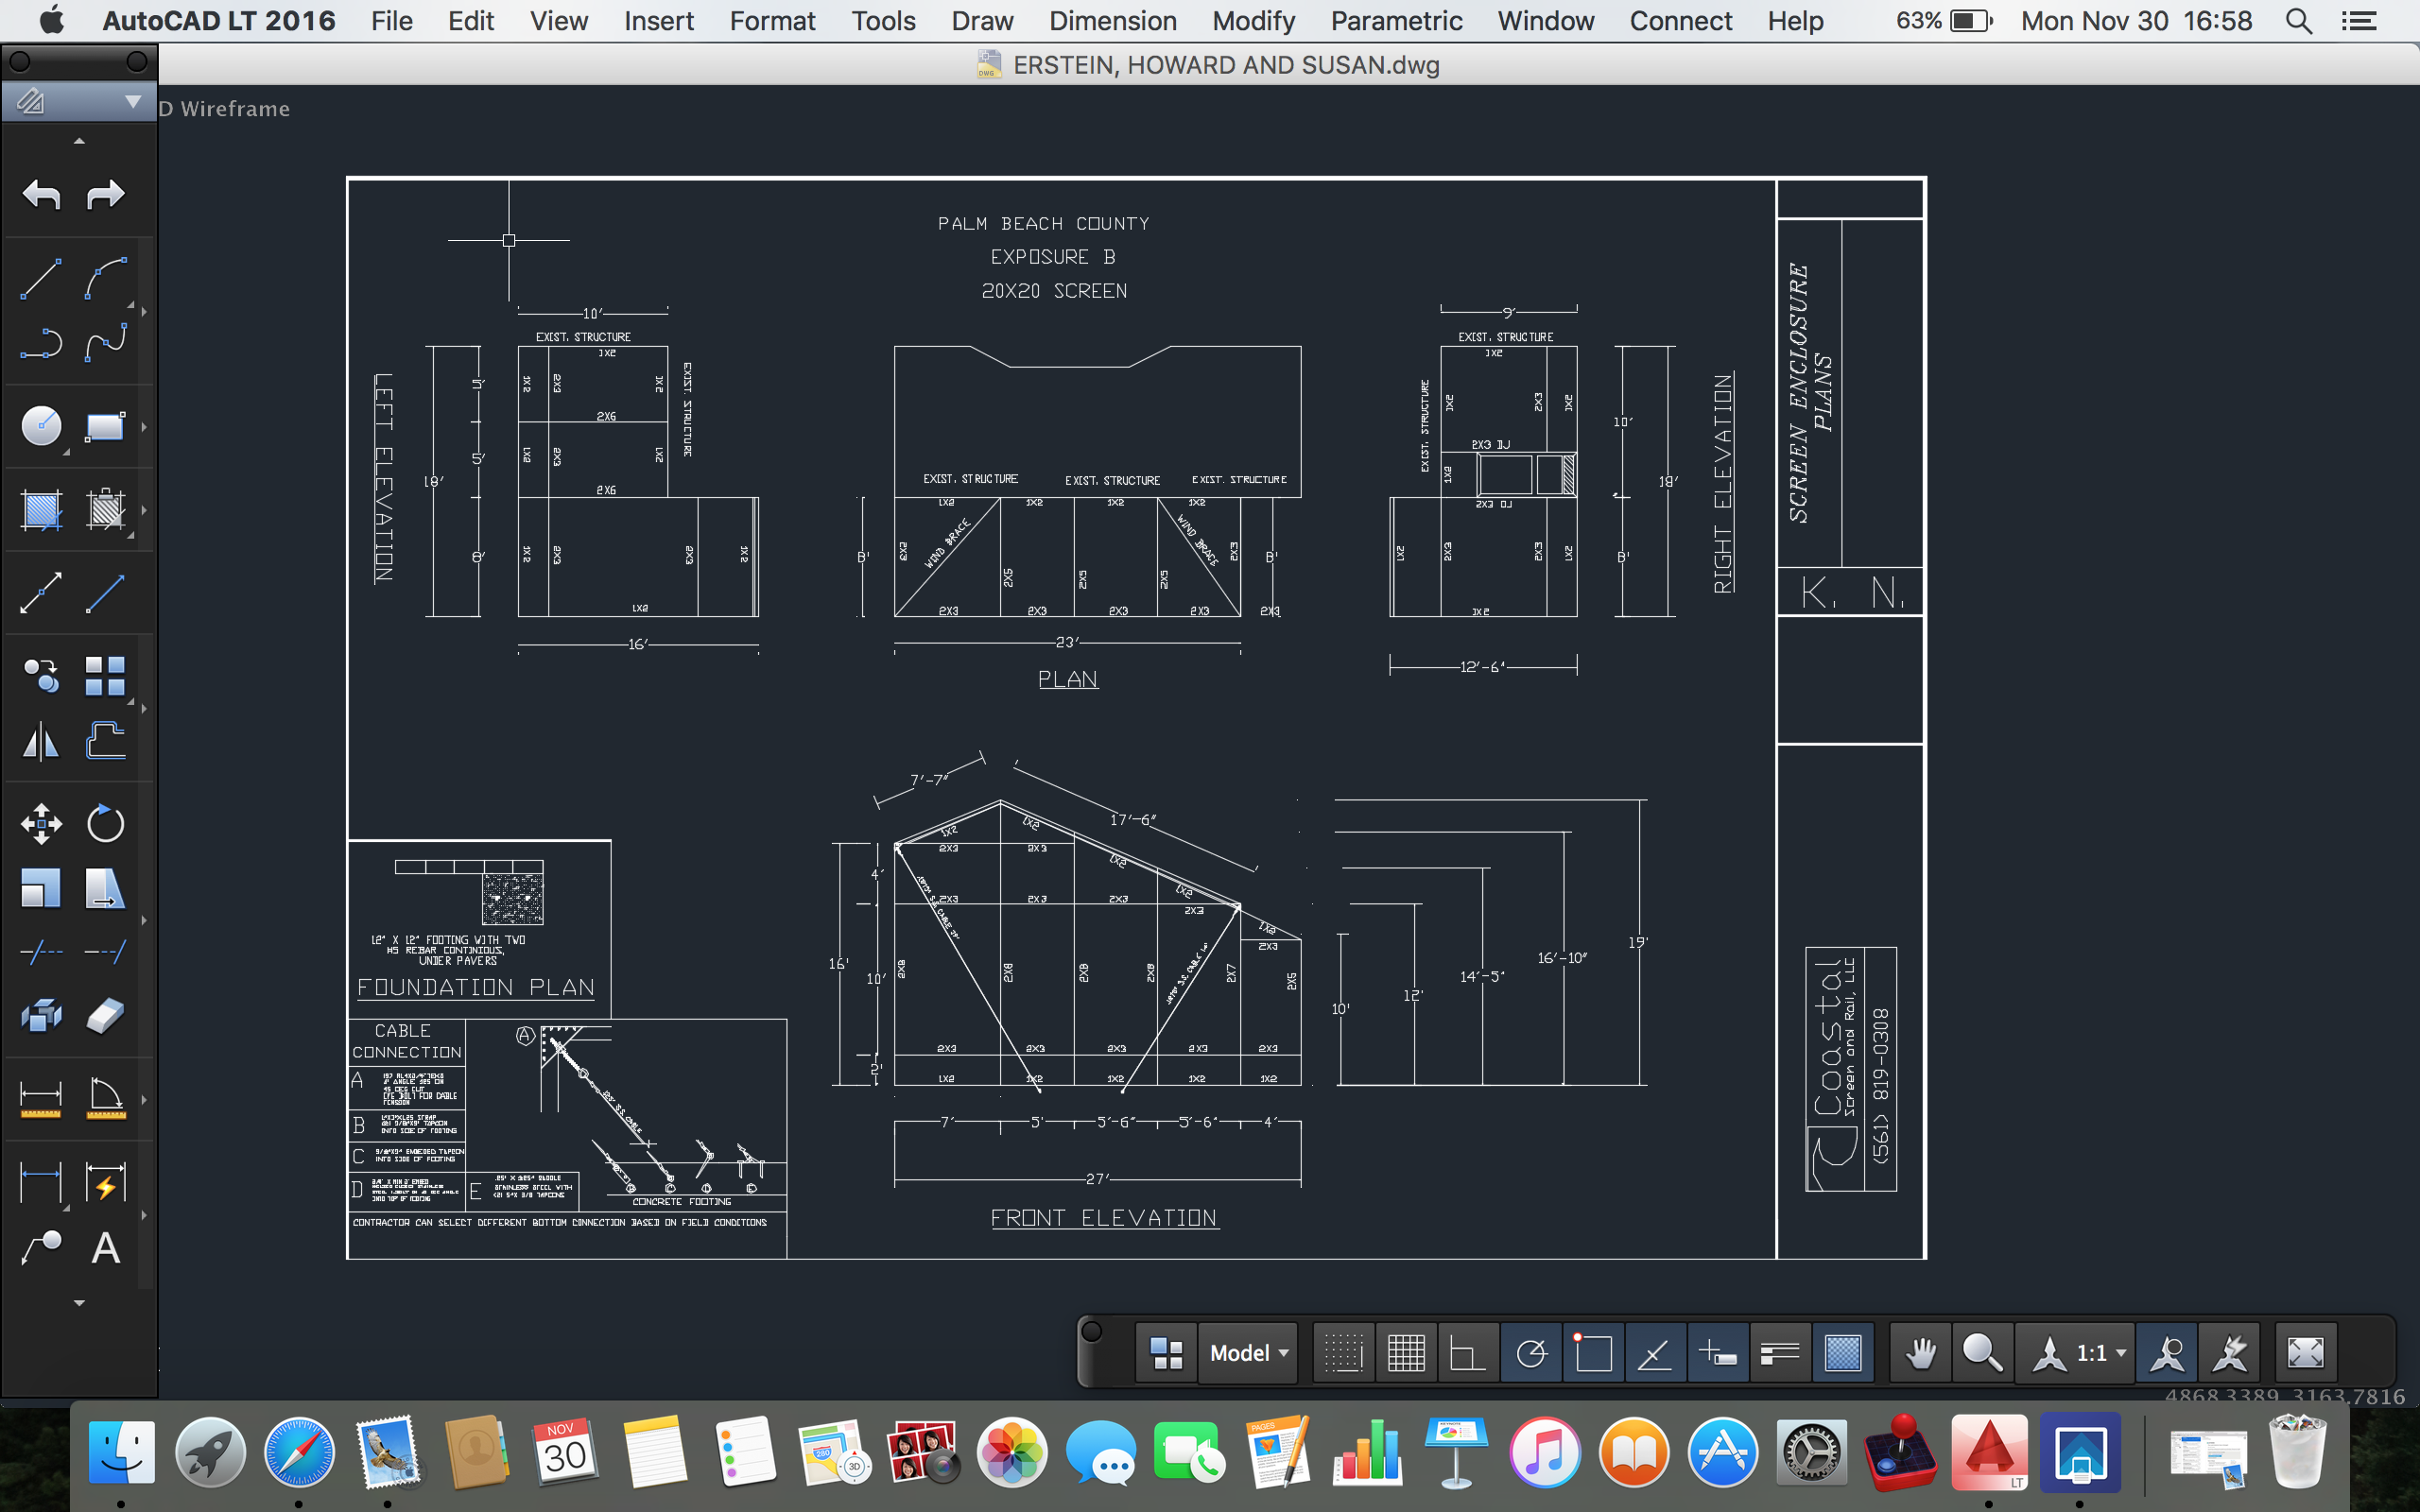 autocad for mac el capitan